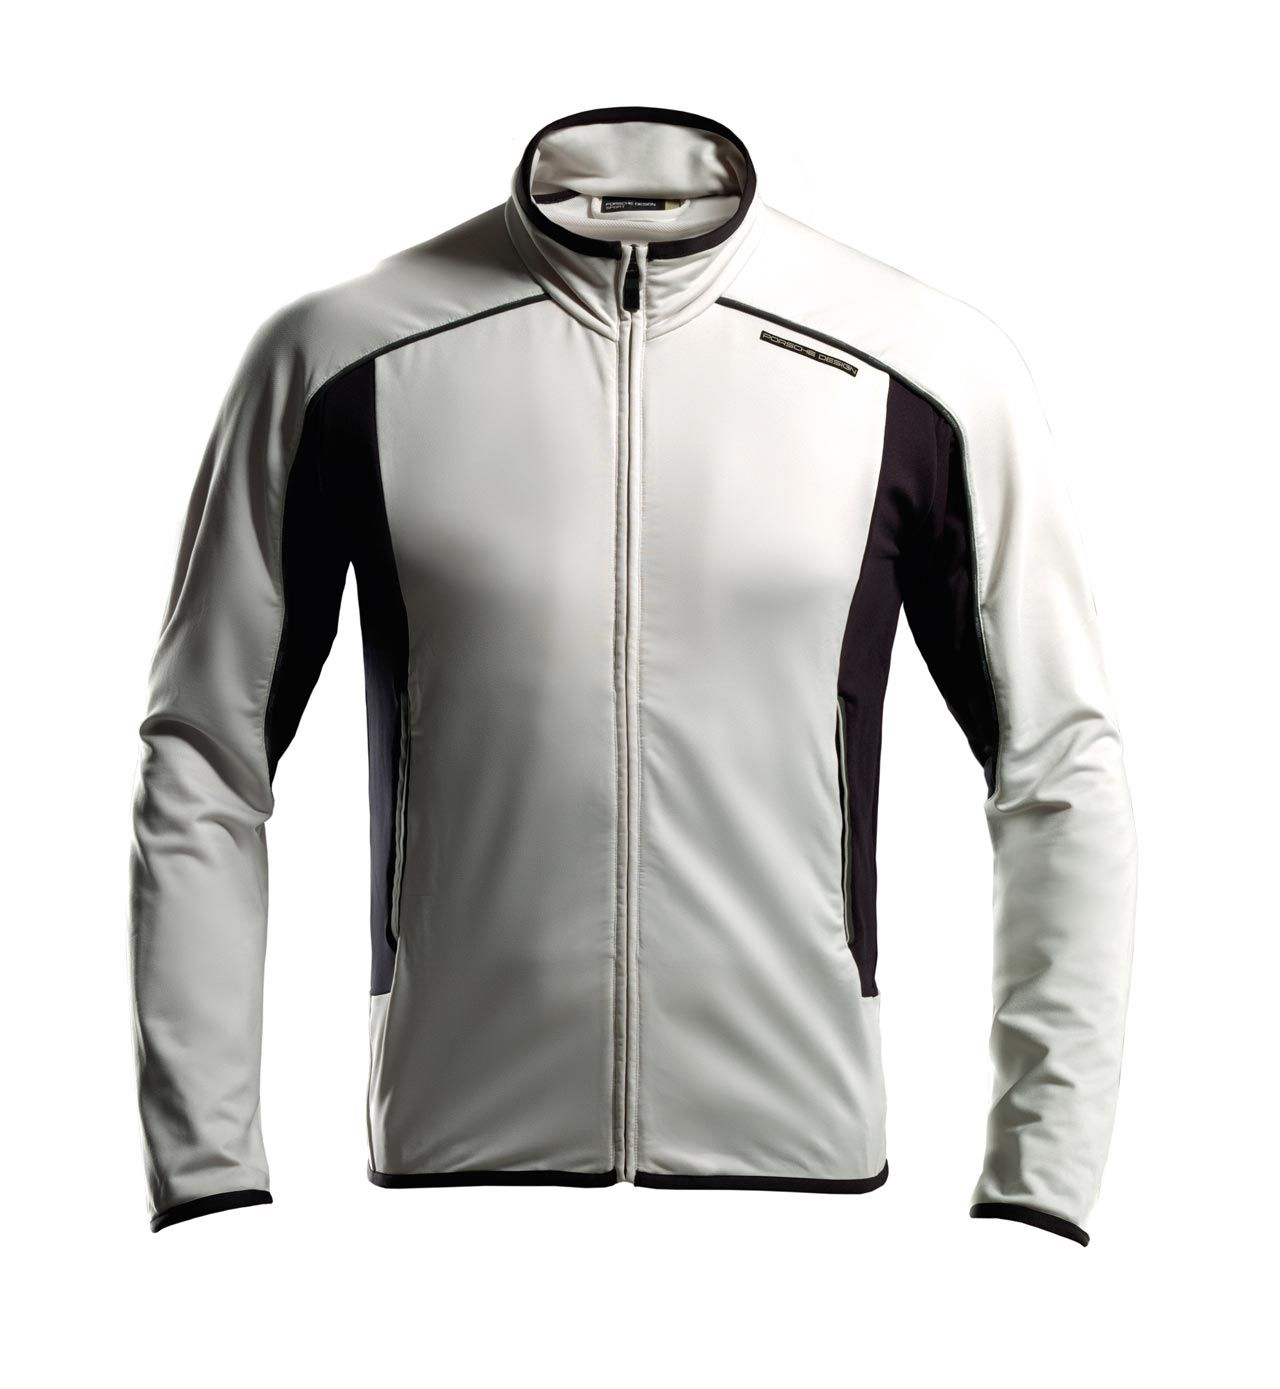 e0602eb058af porsche design apparel - Google Search   Casual menswear   Design ...